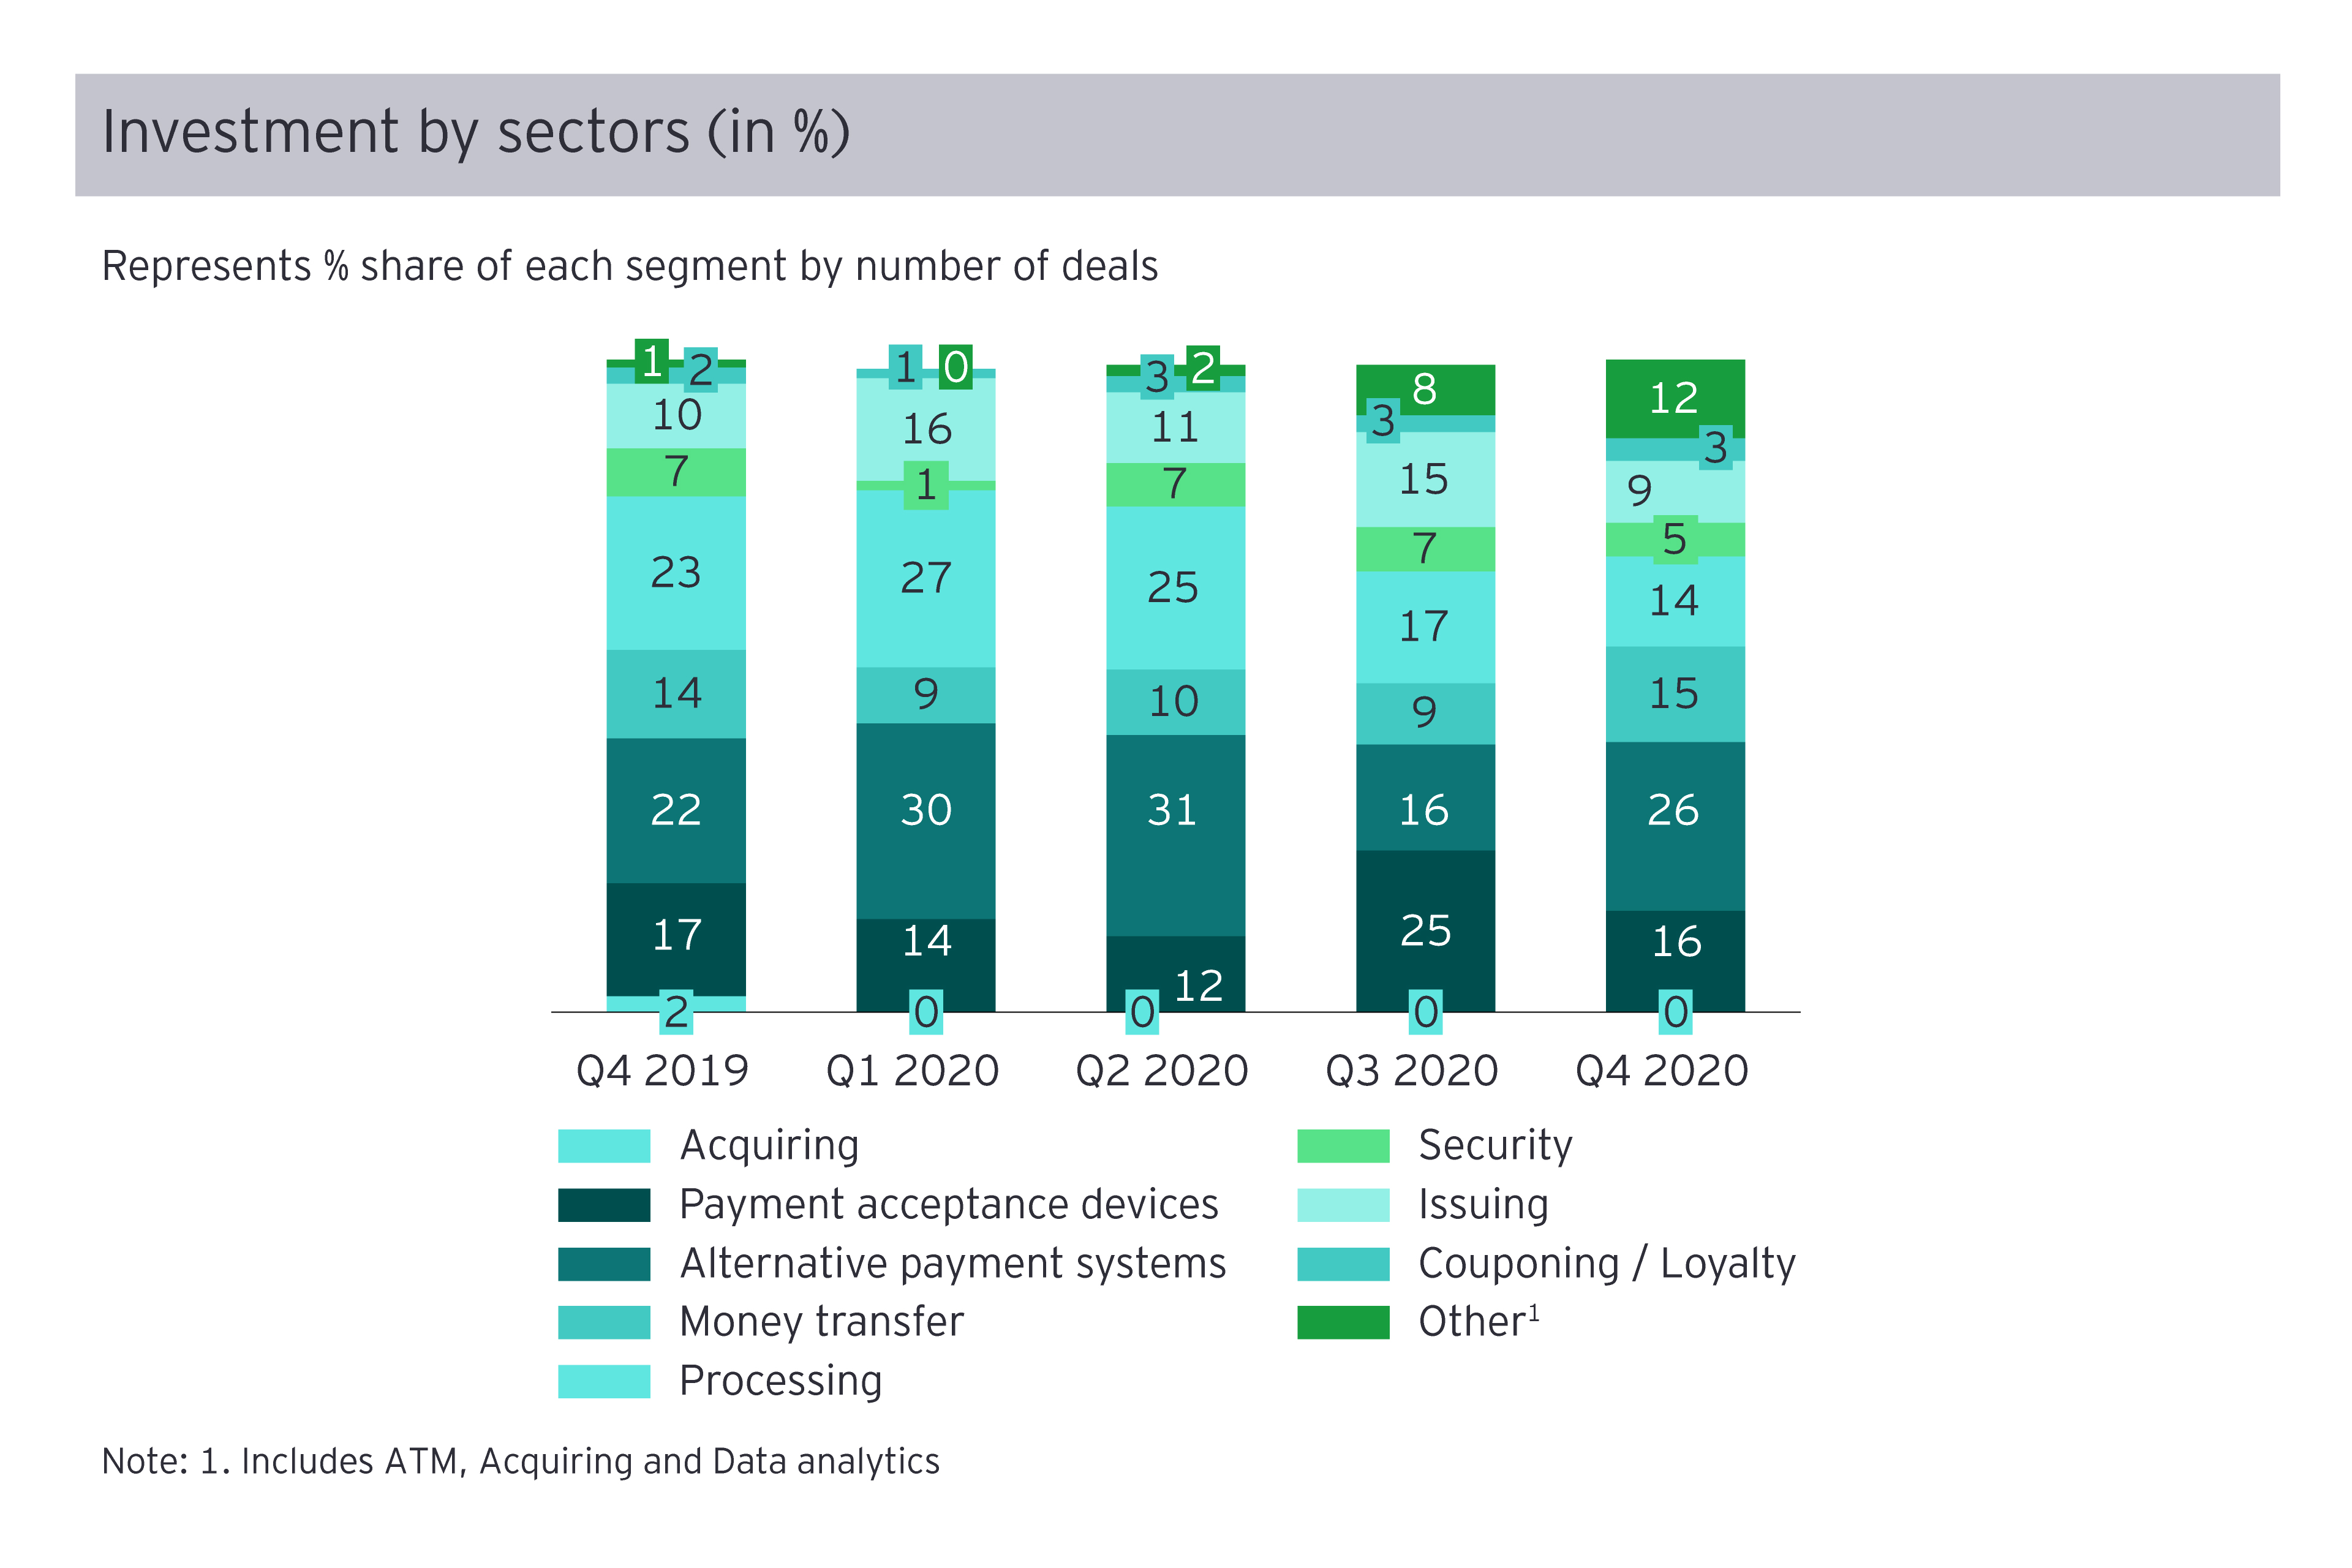 Investment by sectors Q4 2020